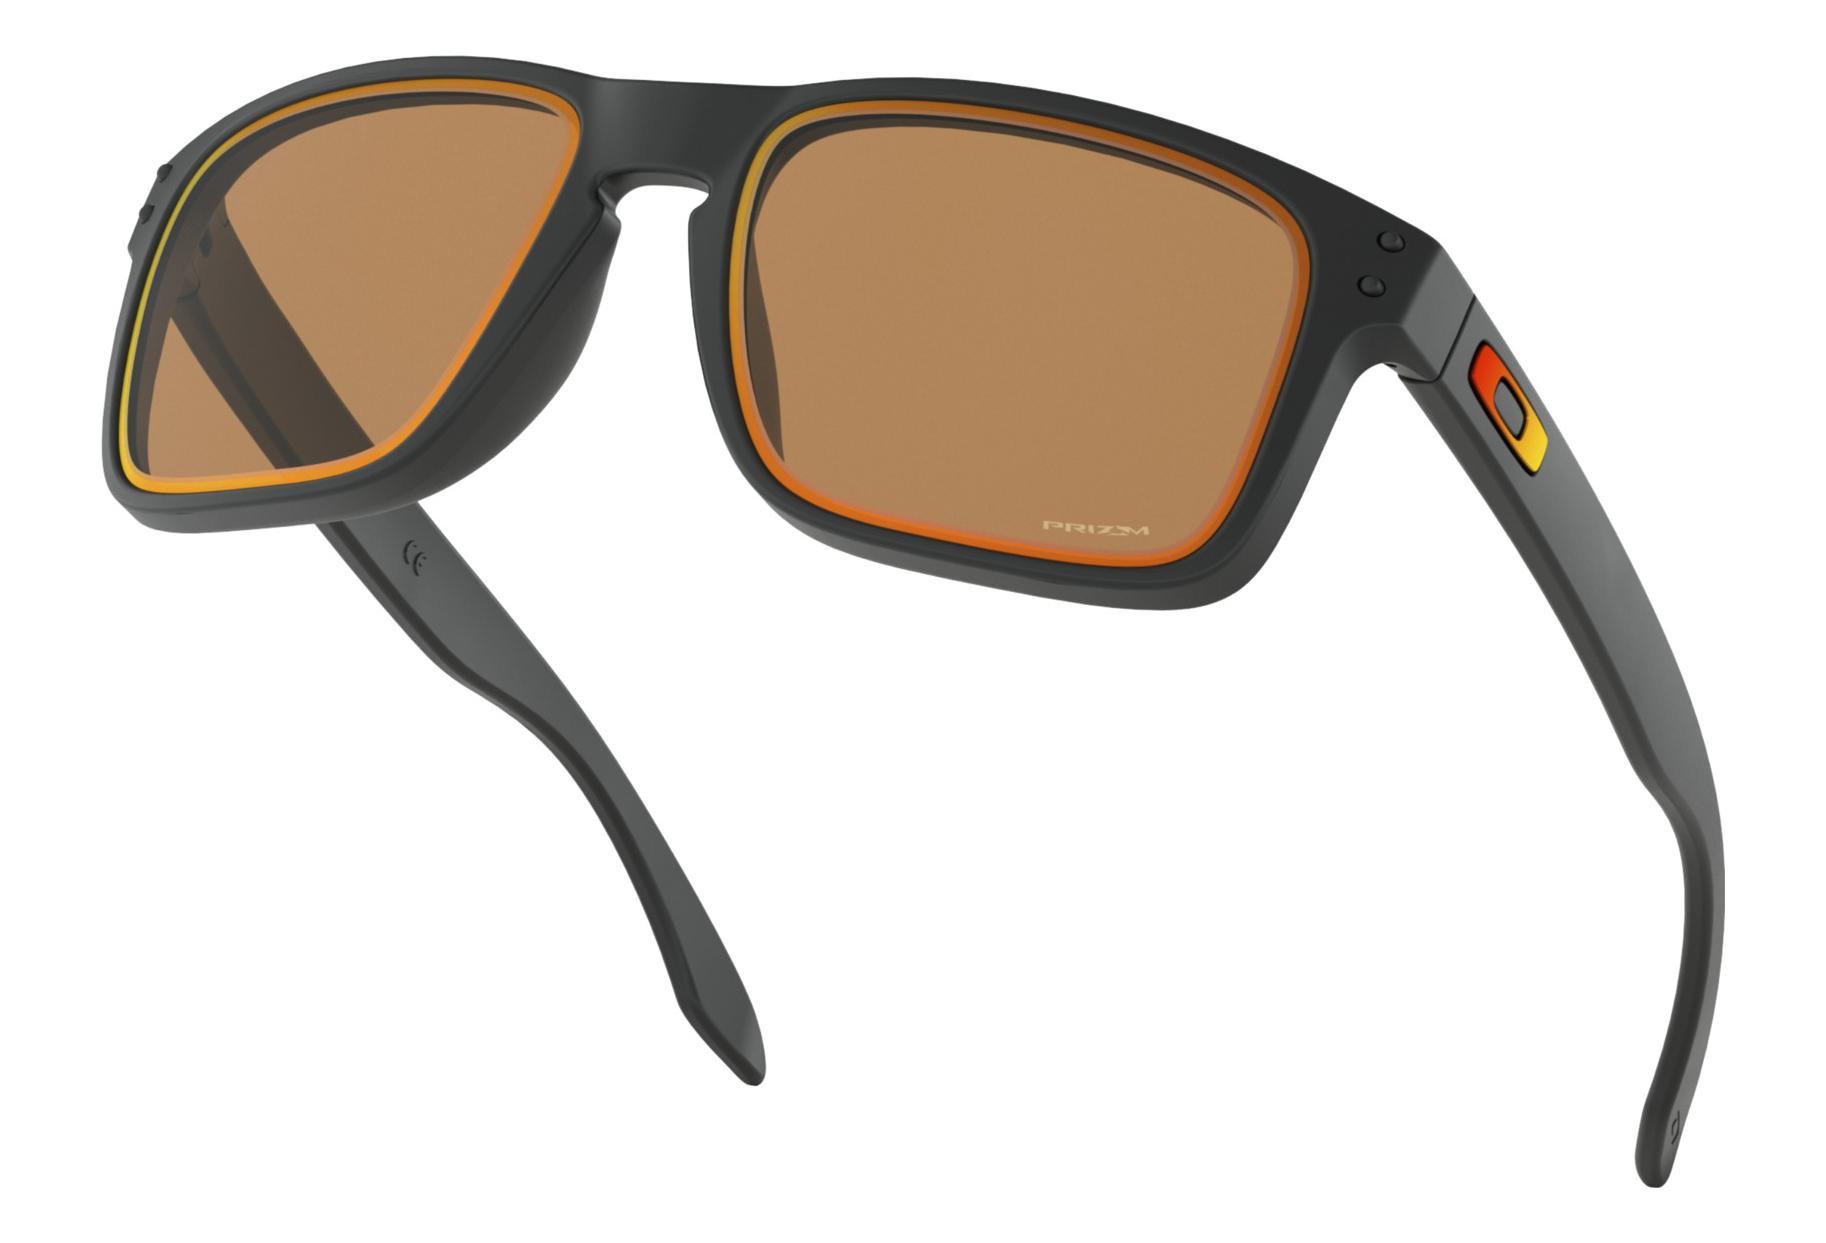 612deb532b Oakley Sunglasses Holbrook Fire and Ice Collection Matte Black   Prizm  Bronze   Ref. OO9102